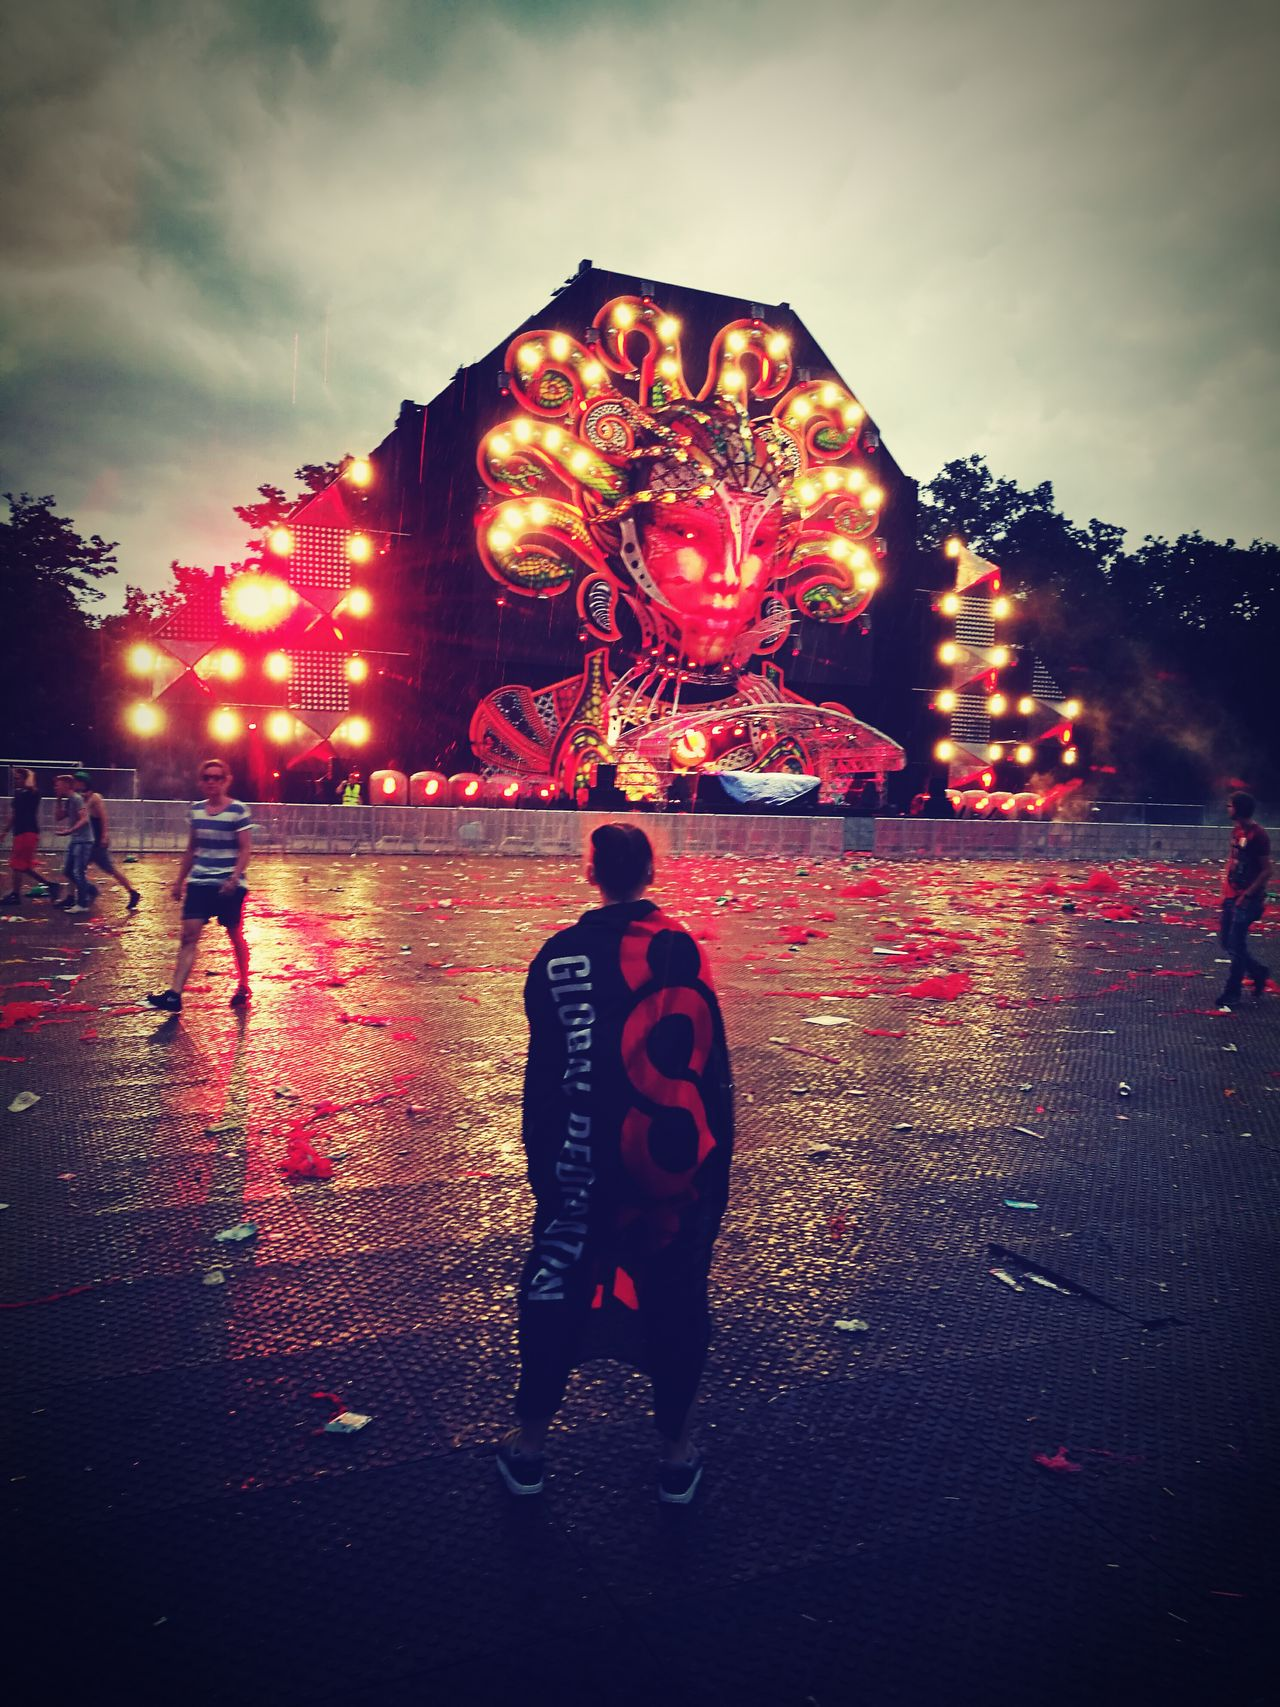 Coone Worldclubdome Worldclubdome2016 QDance Hardstyle Coone Djcoone Pictureoftheday BelgianGirl